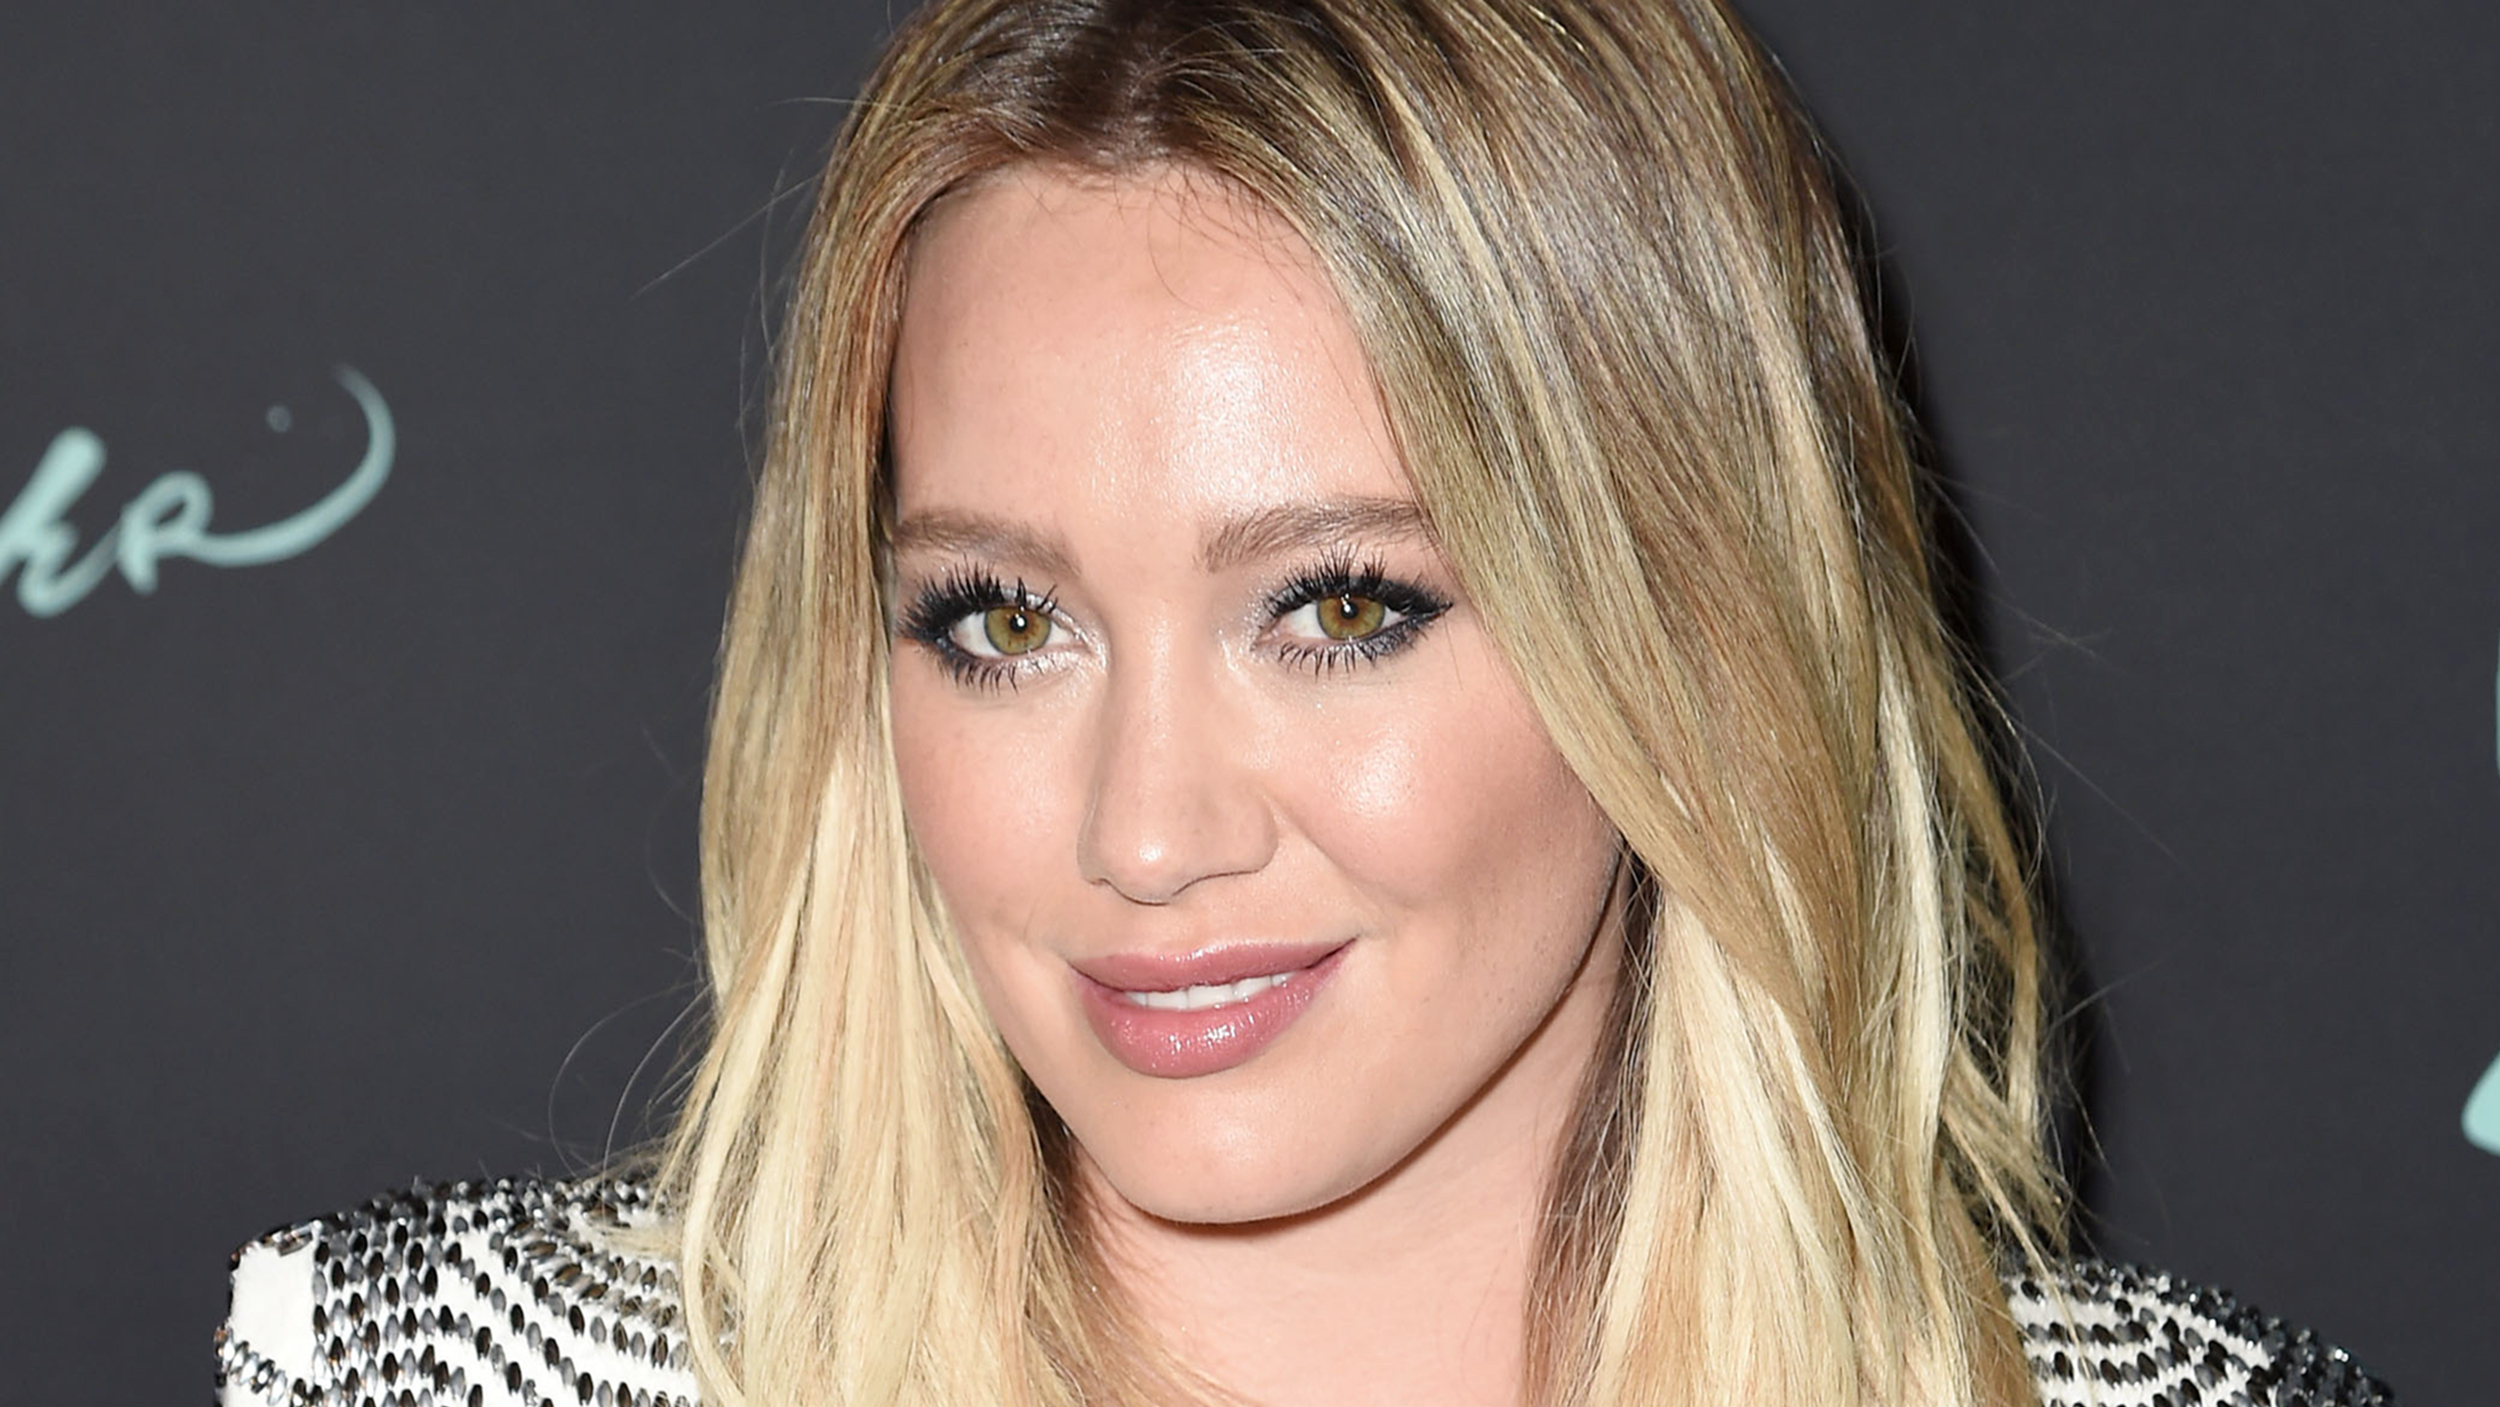 Hilary Duff Reveals Her Beautiful New Bangs On Instagram